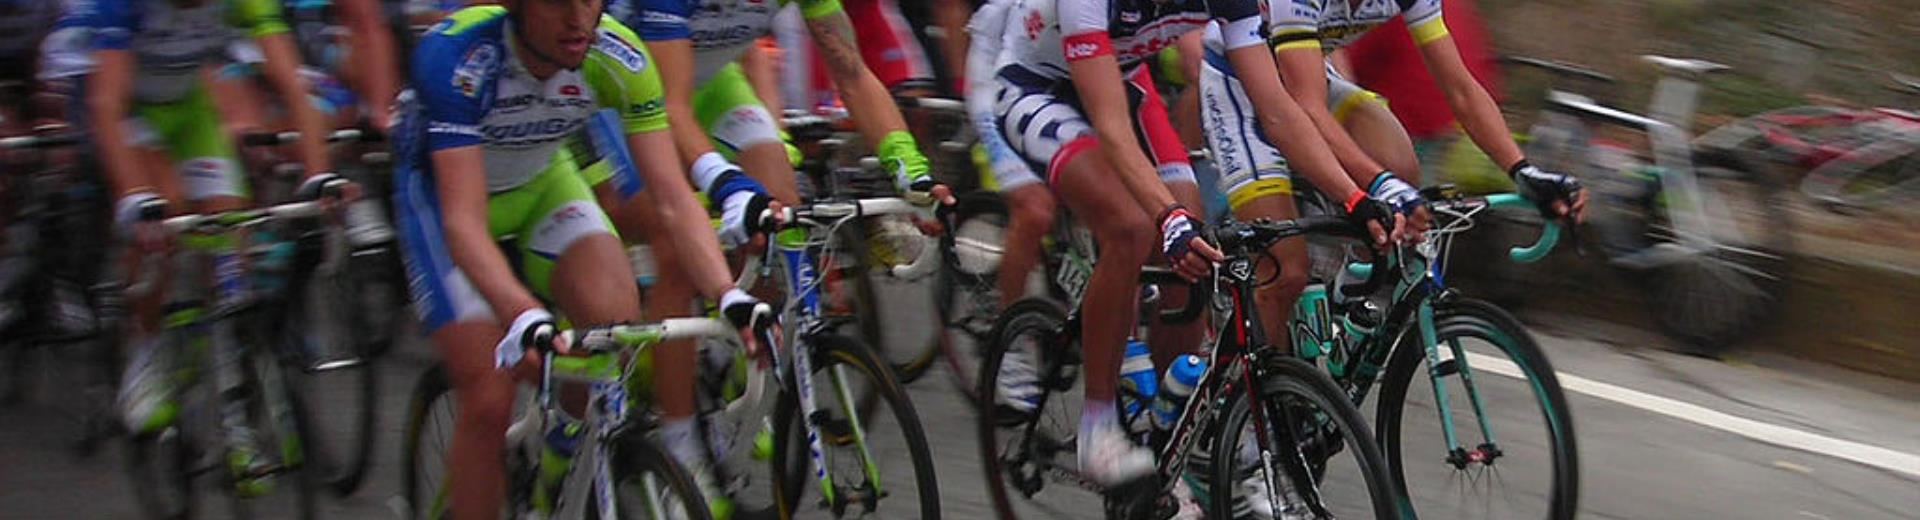 The most important cycling event in Italy which terminates in the city die flowers!